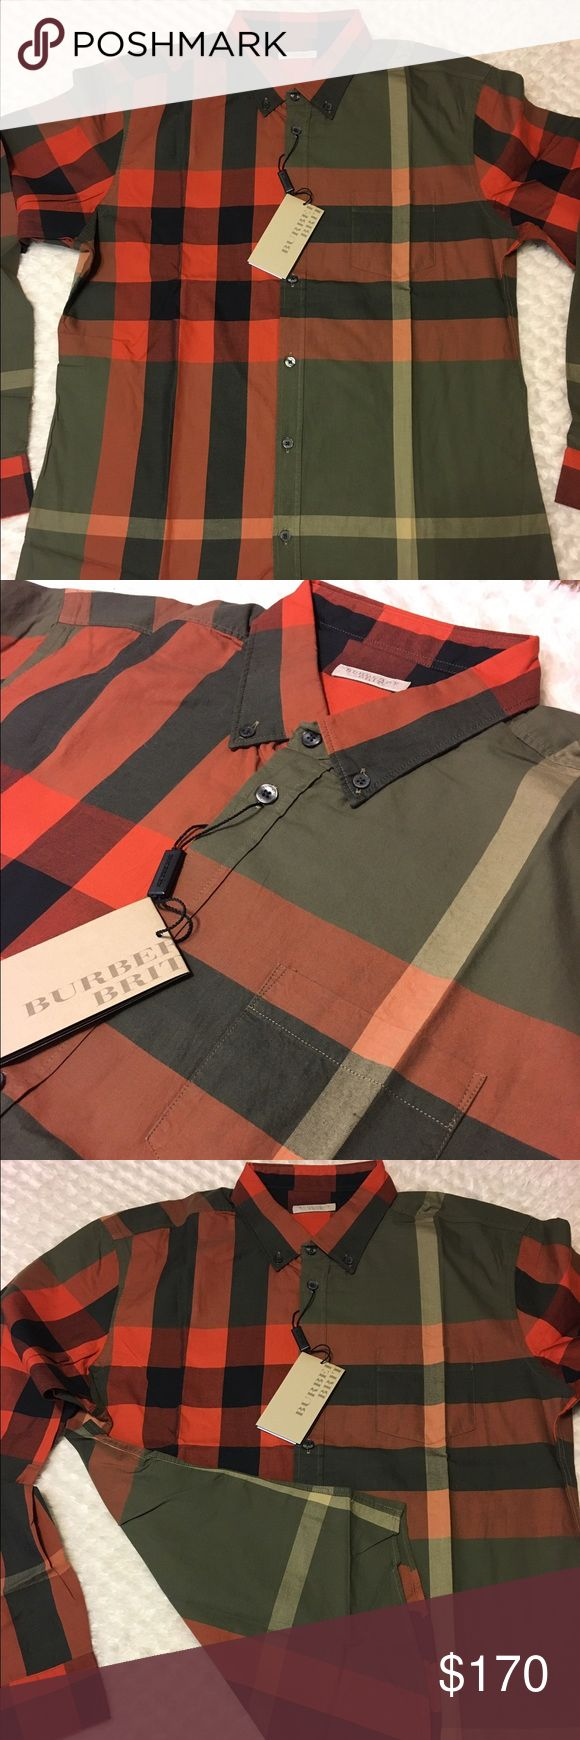 New burberry shirt for men L New with tags burberry shirt for men long sleeves military khaki color 100% cotton made in Thailand size large Burberry Shirts Casual Button Down Shirts